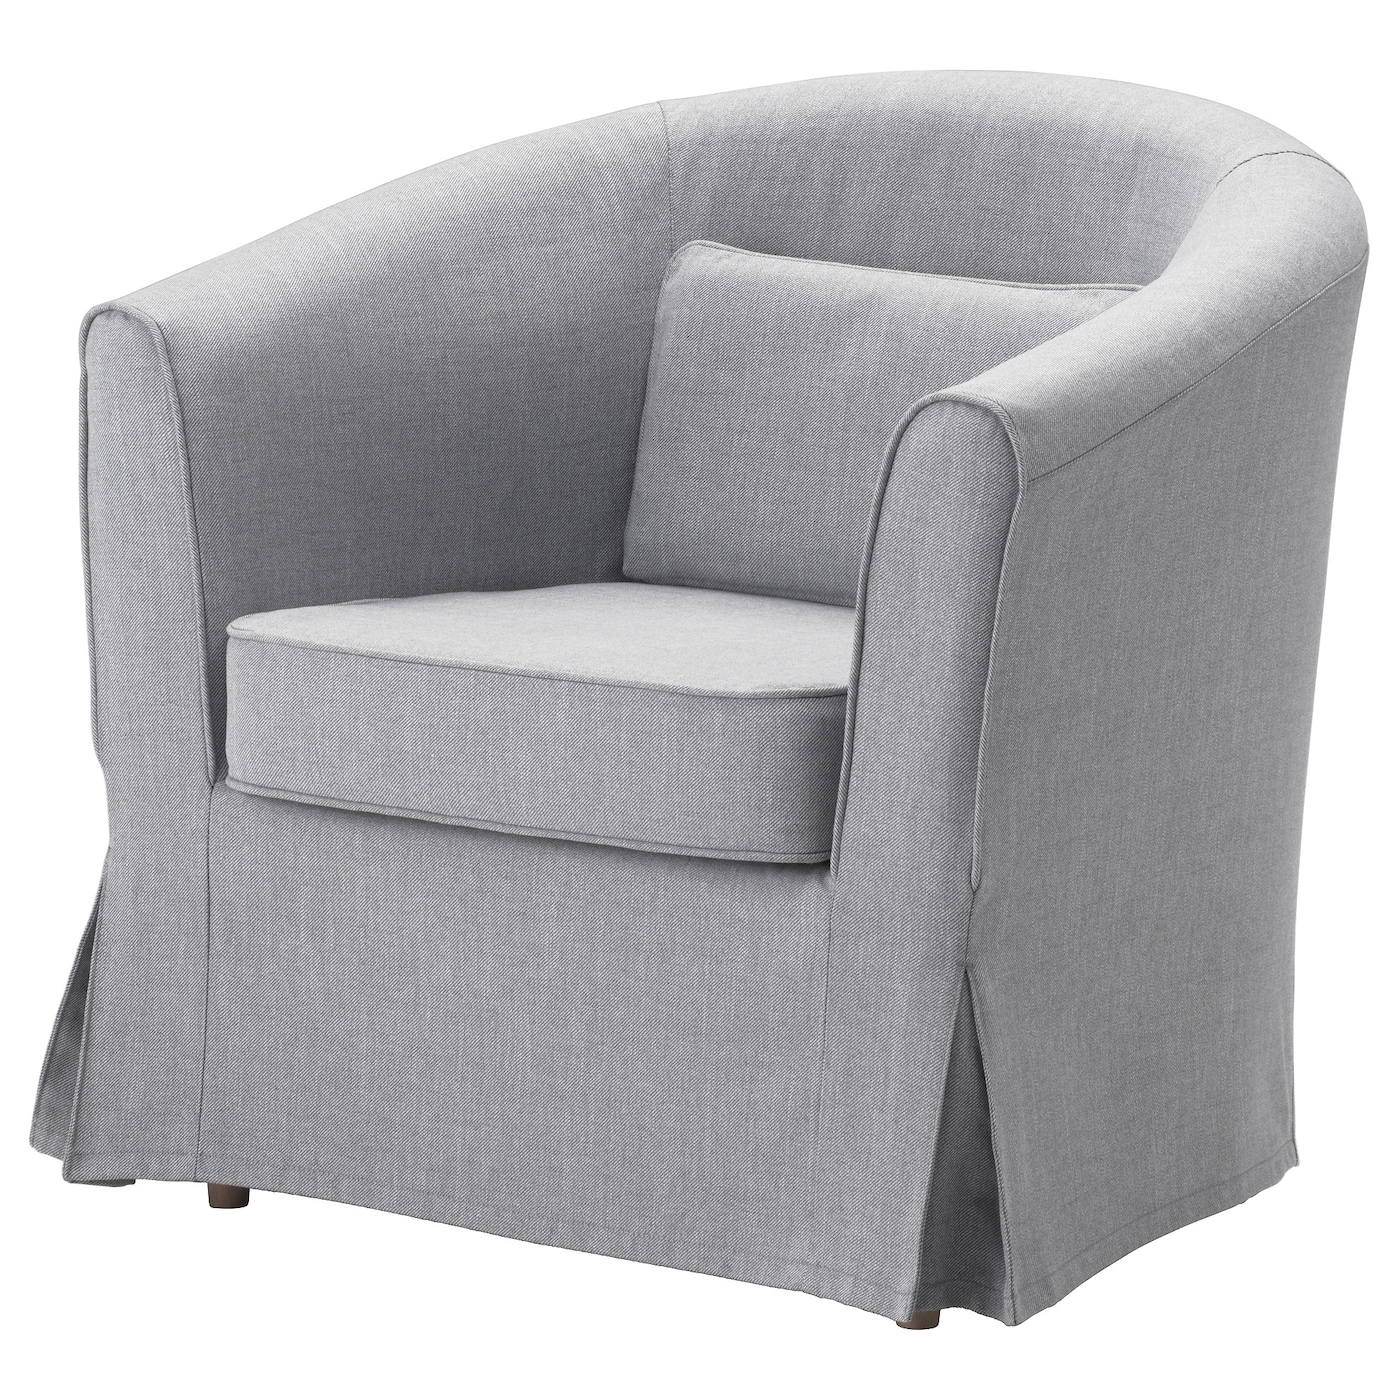 Ikea Tullsta Armchair Cover The Included Cushion Can Be Used For Lumbar Support